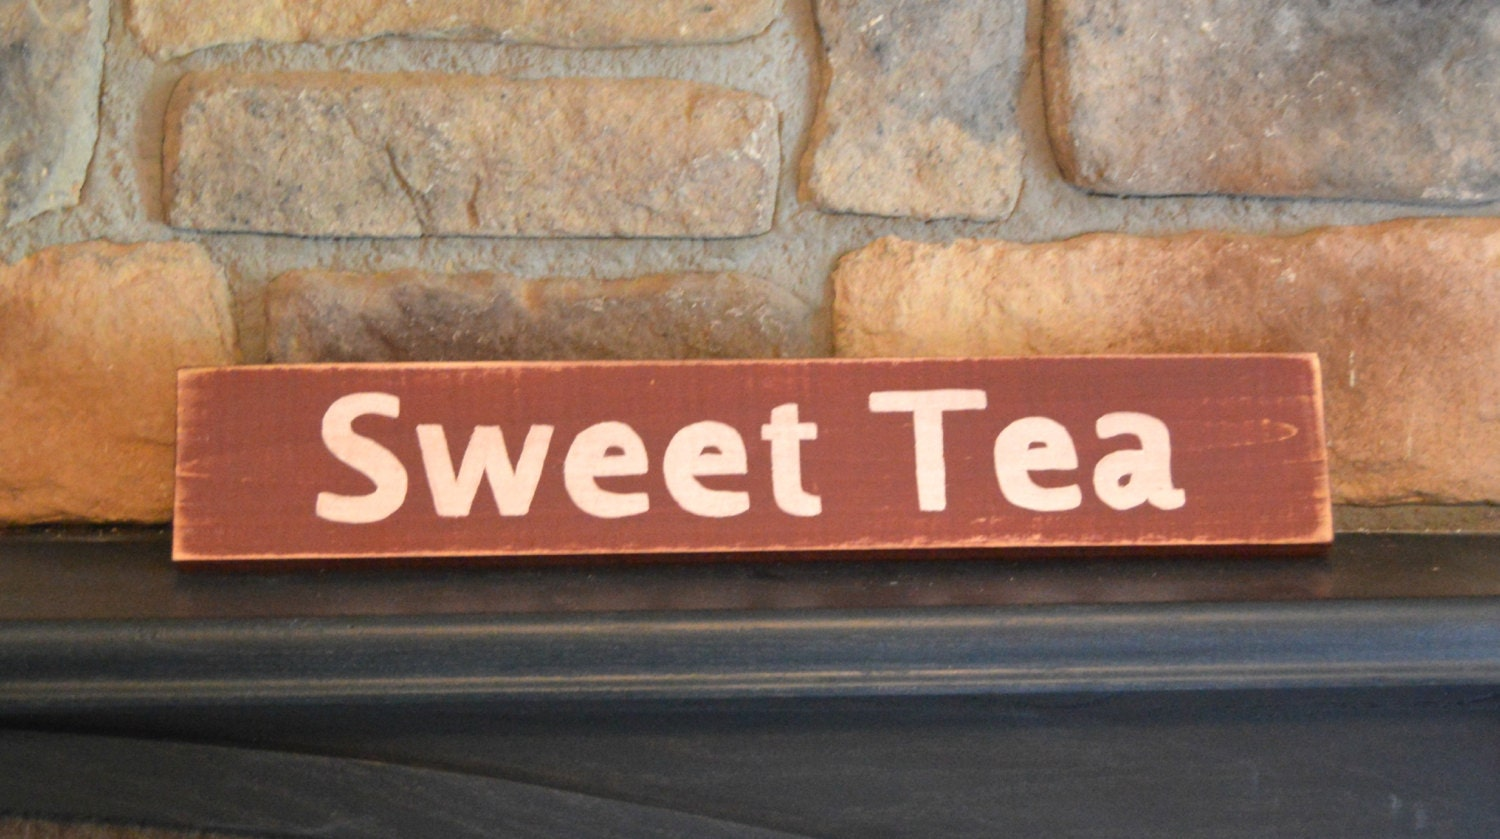 Wall Decor Signs With Sayings : Rustic wood sweet tea sign wooden wall decor sayings